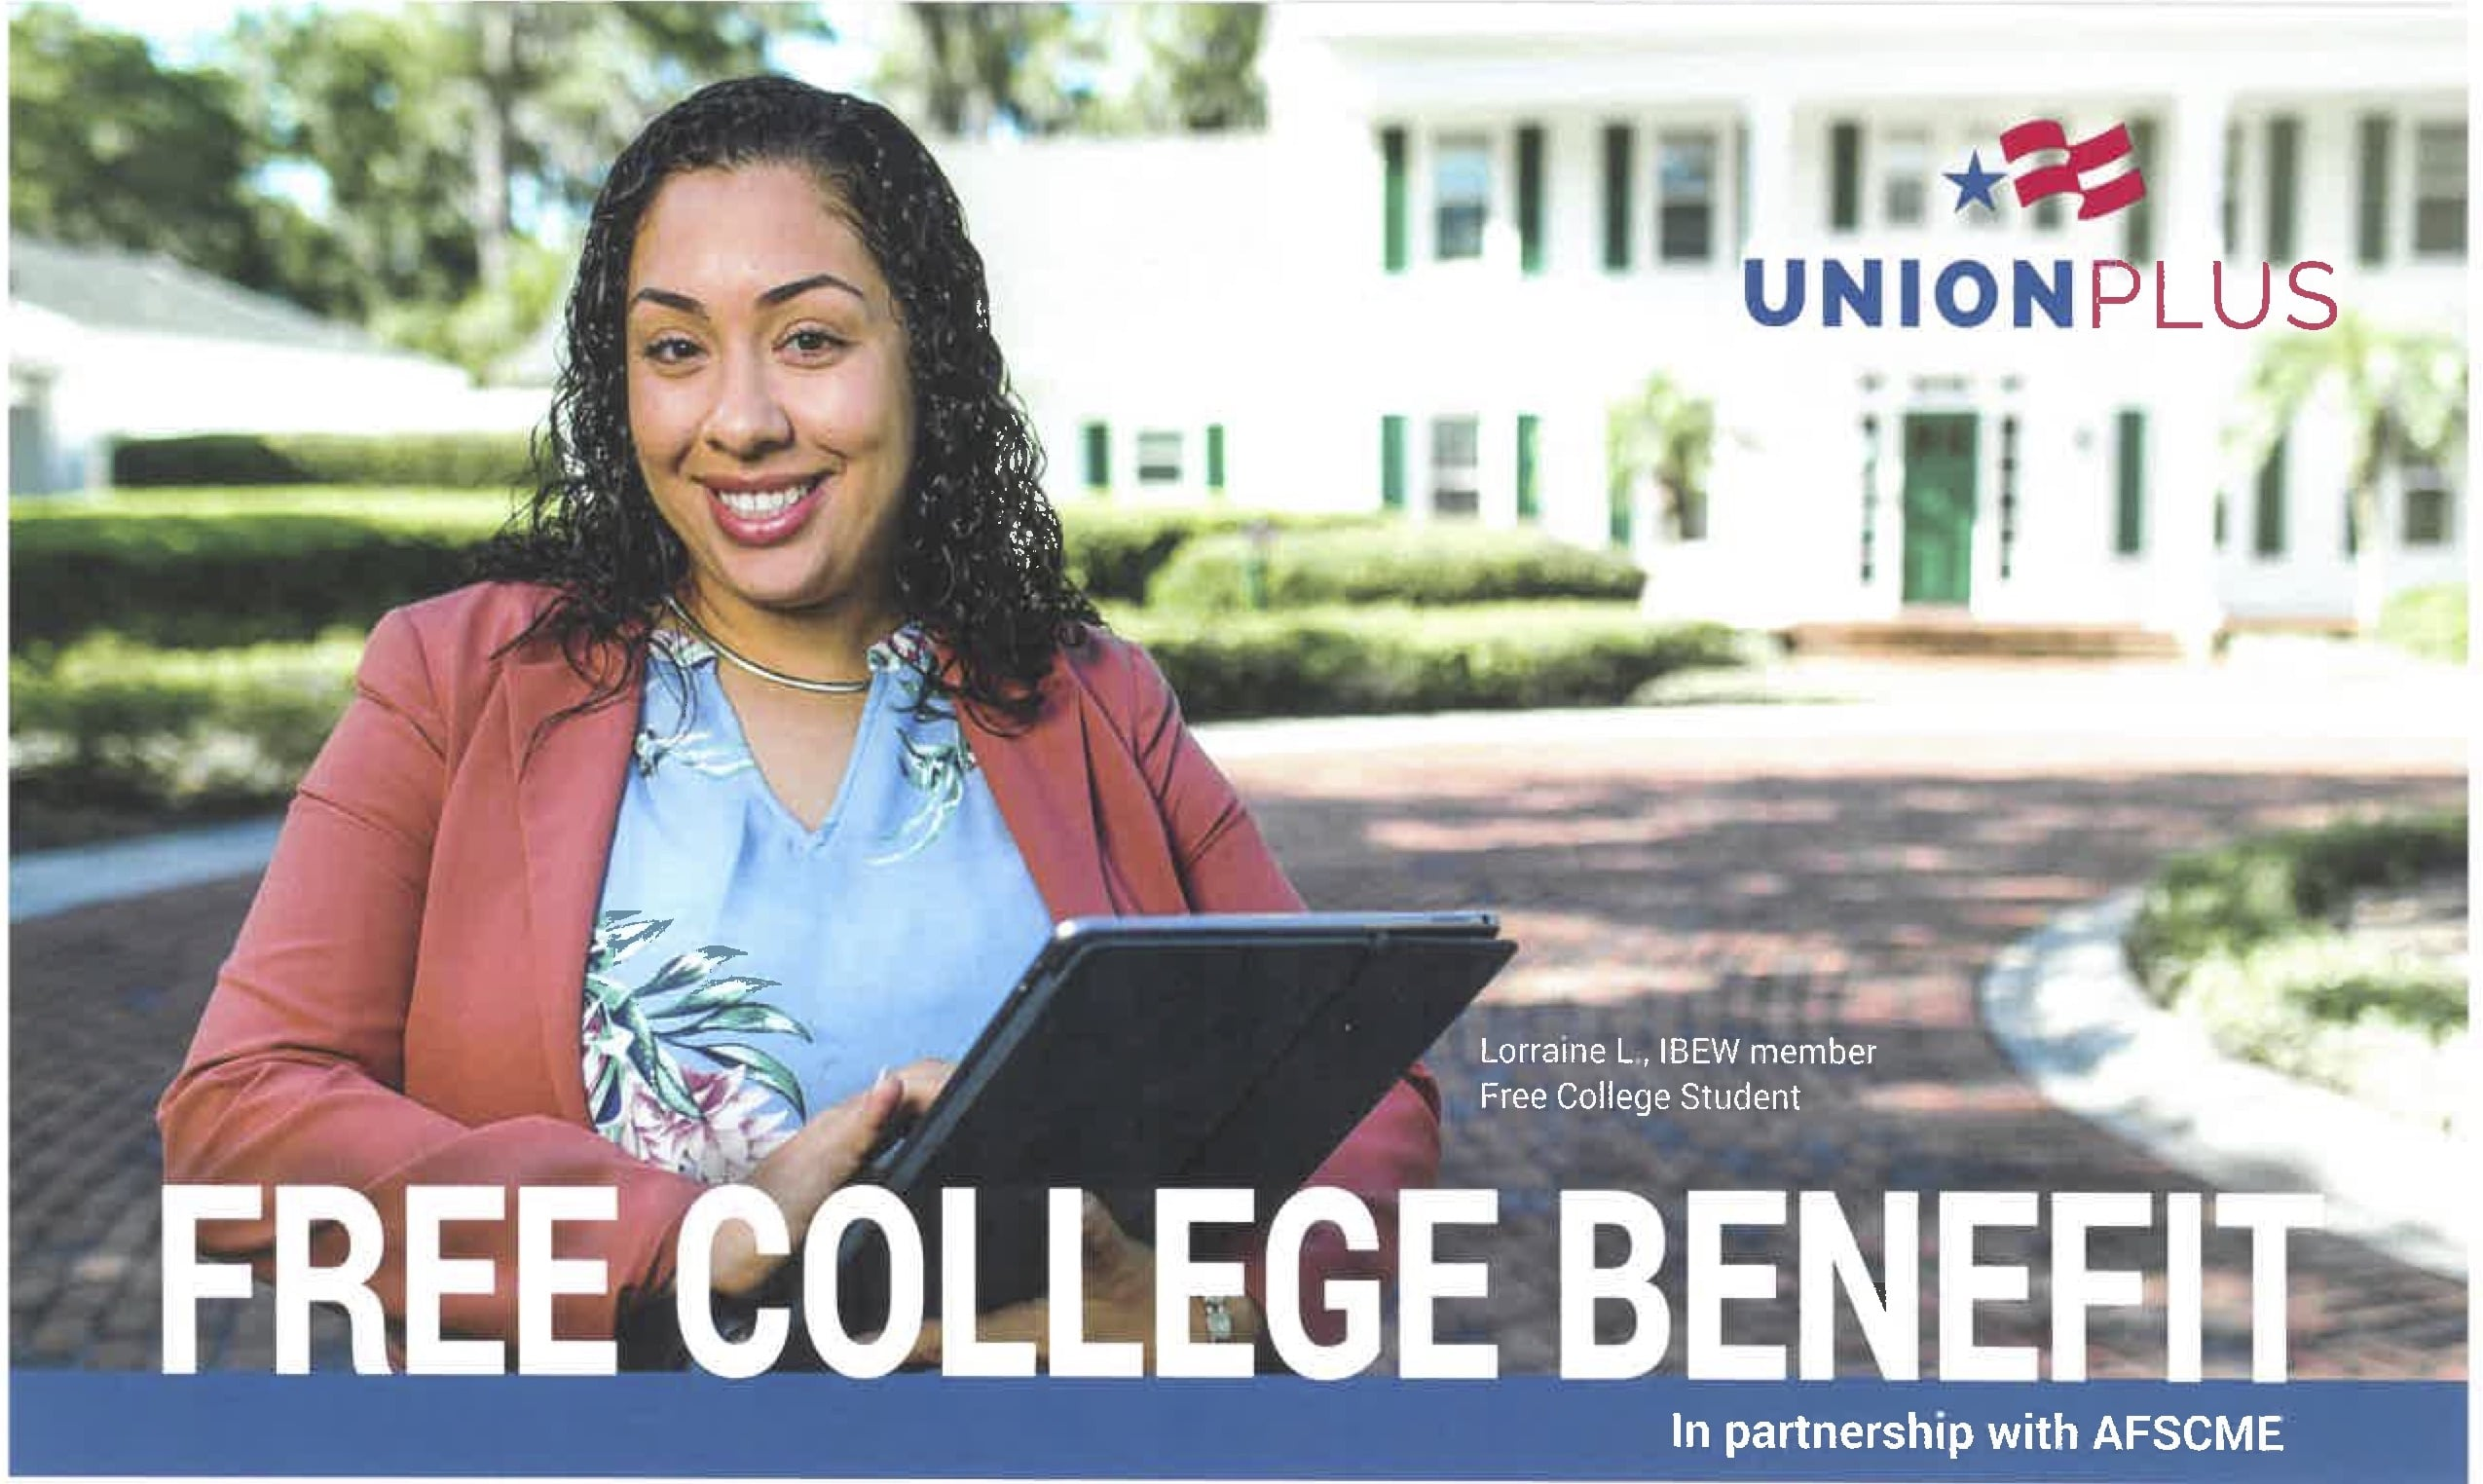 AFSCME Free College Benefit